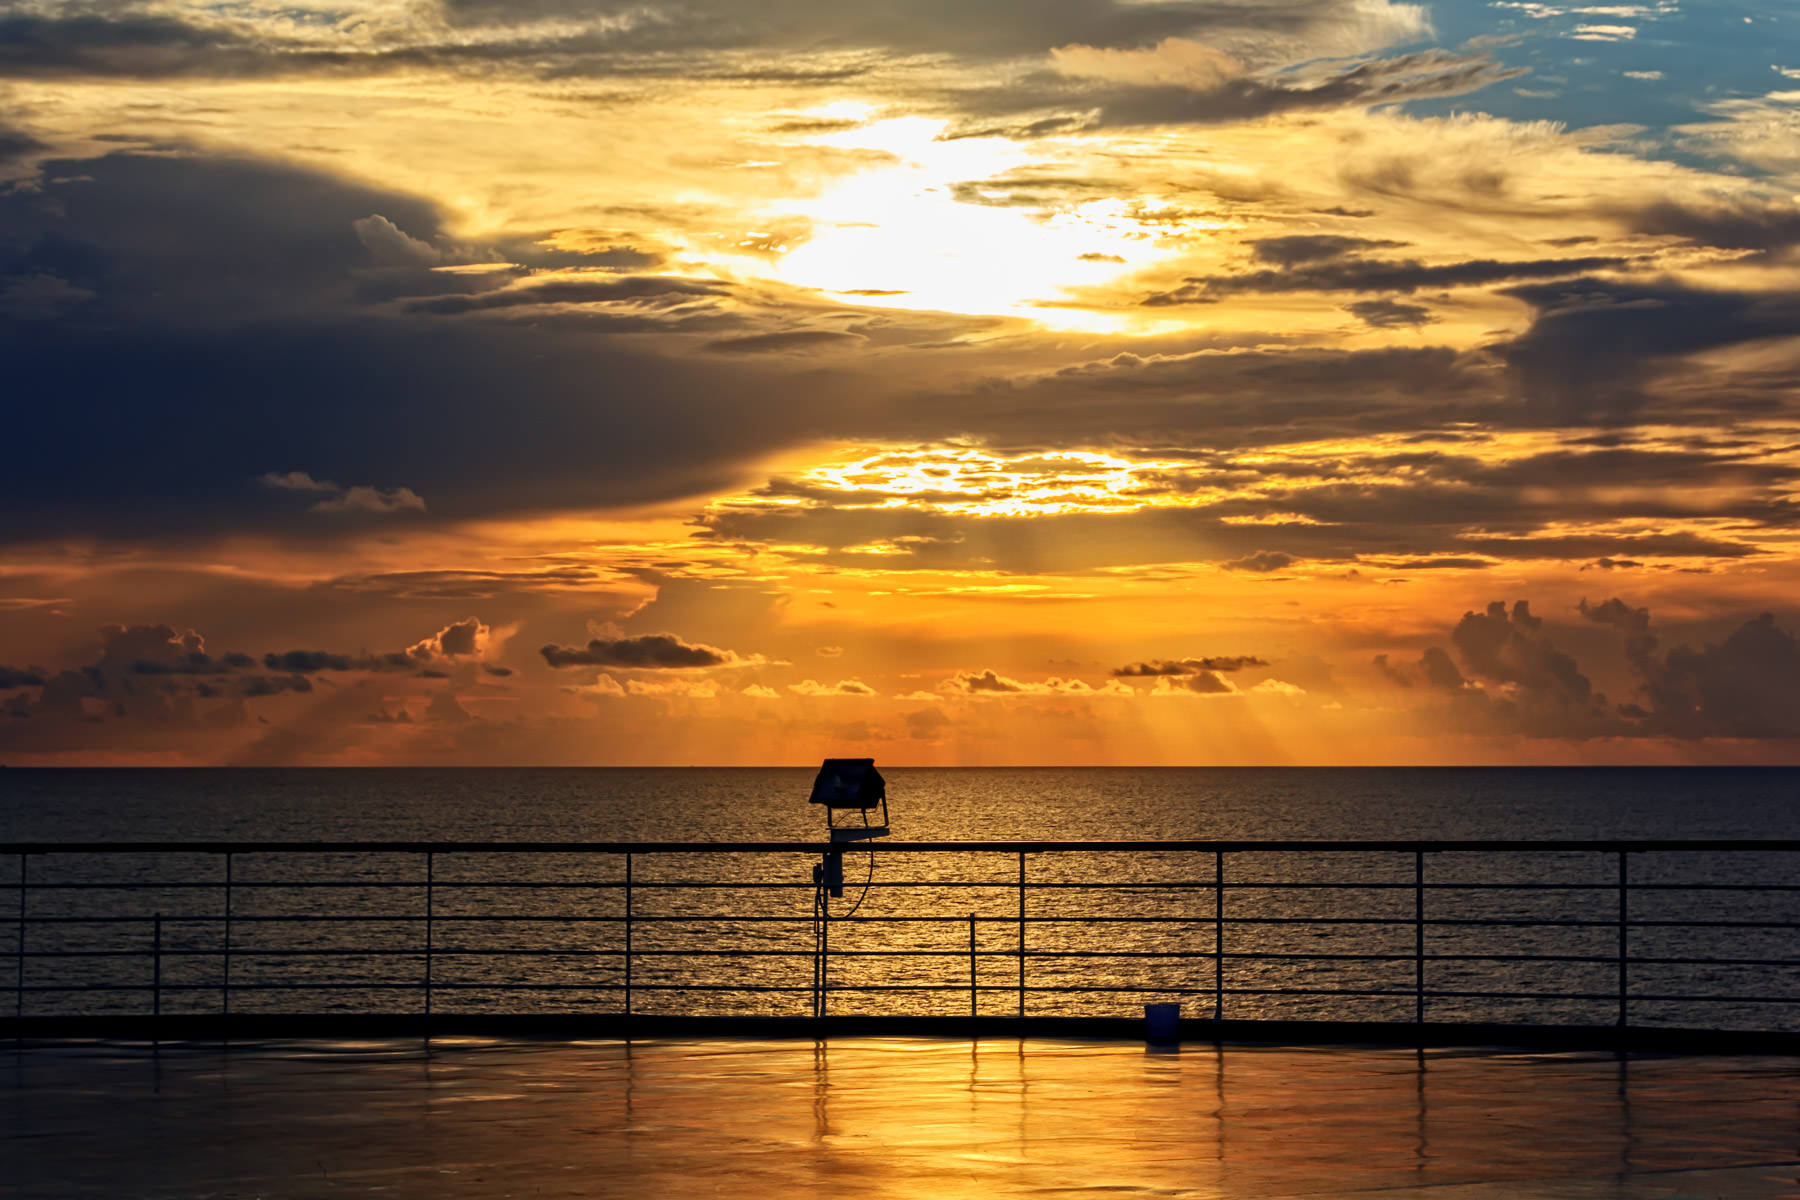 The sun rises over the Gulf of Mexico as seen from the deck of the cruise ship Carnival Triumph.